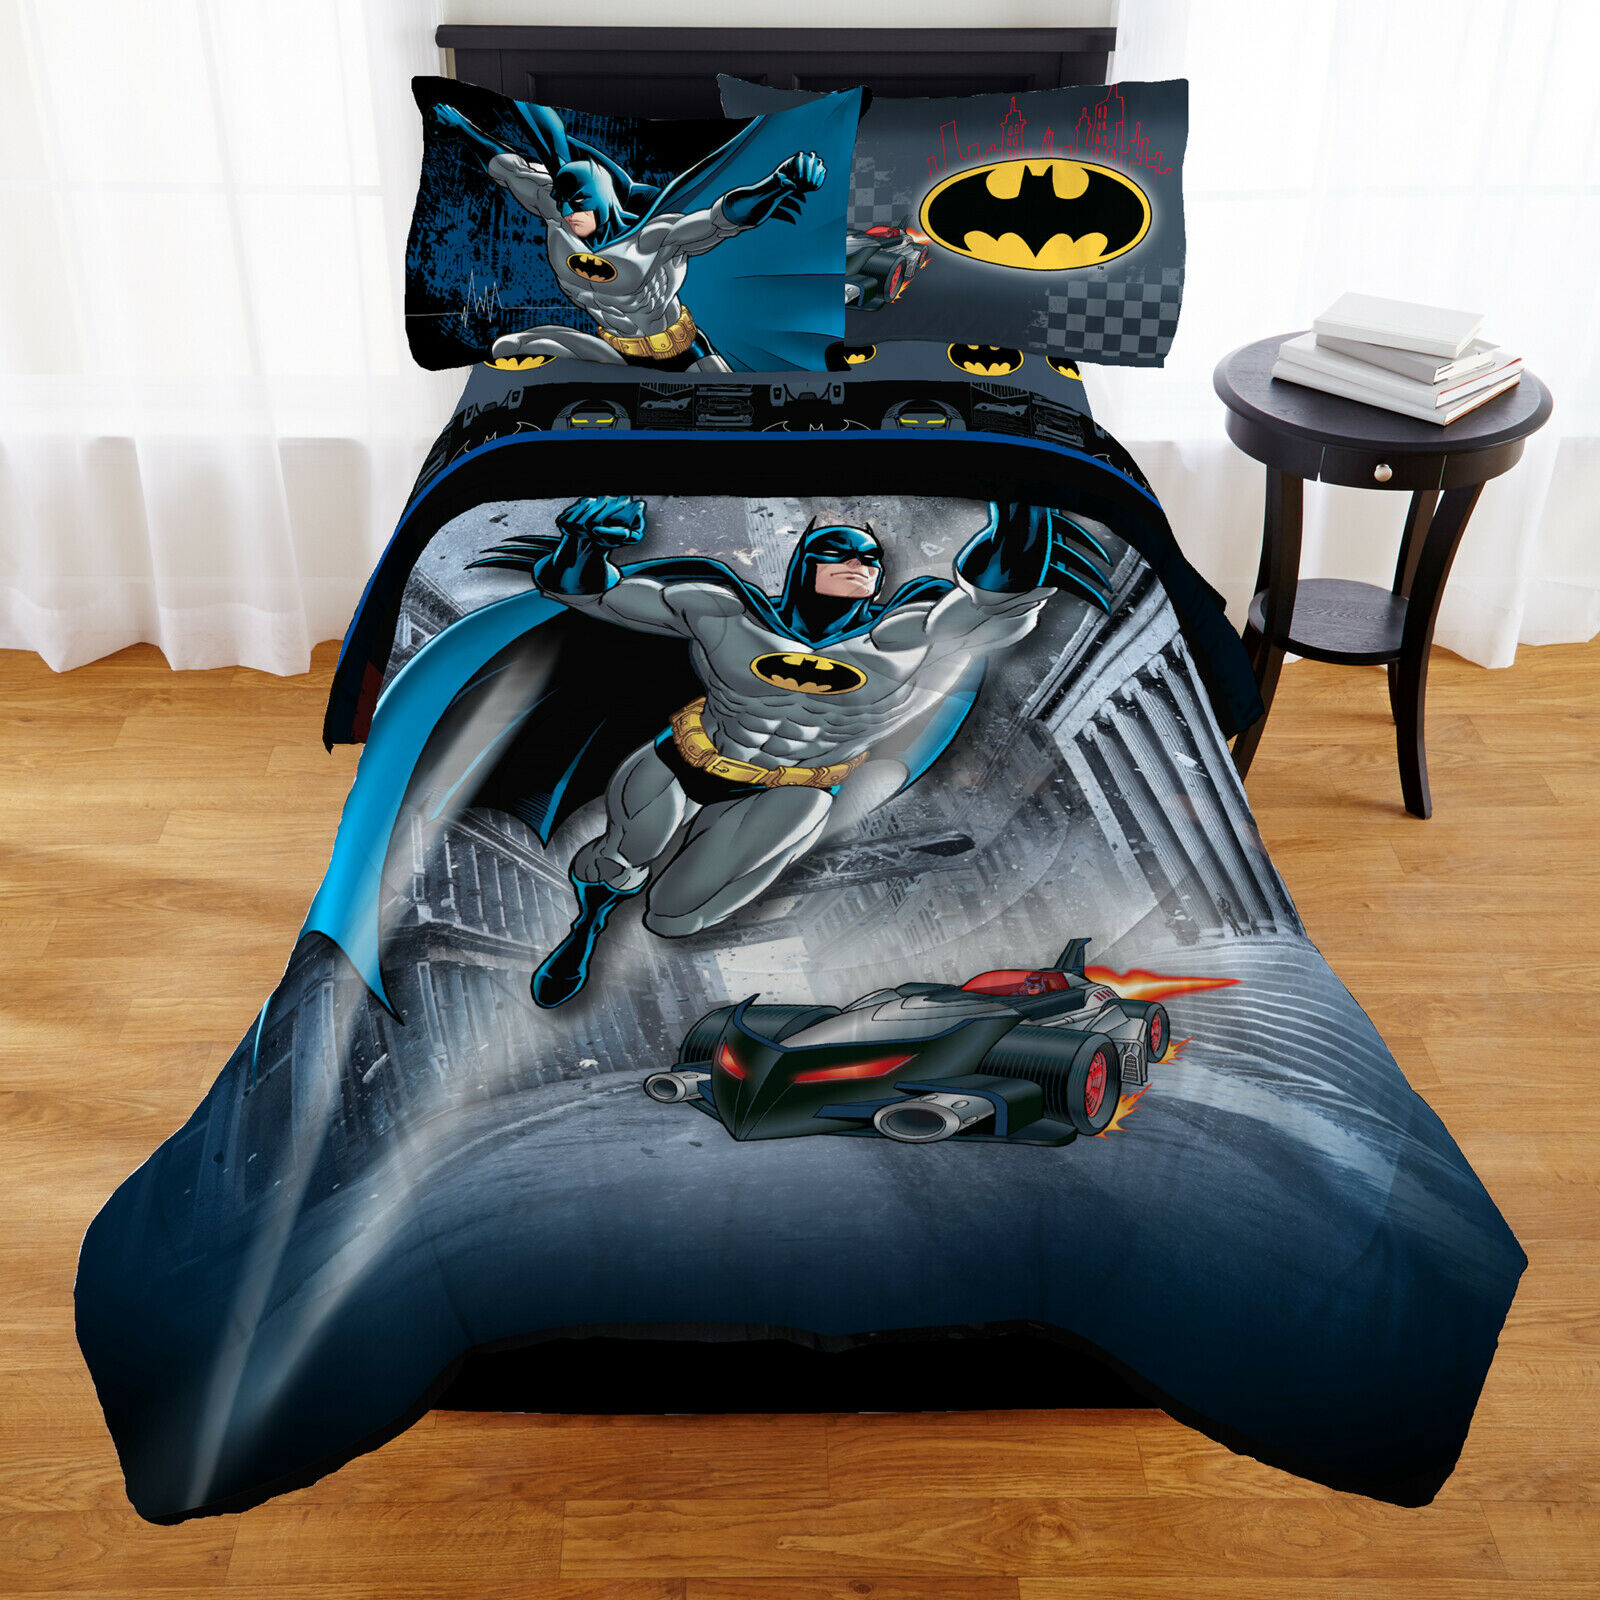 Details About Twin Size Batman Bedding Set Bed In A Bag Bedroom Comforter Sheets Pillowcase